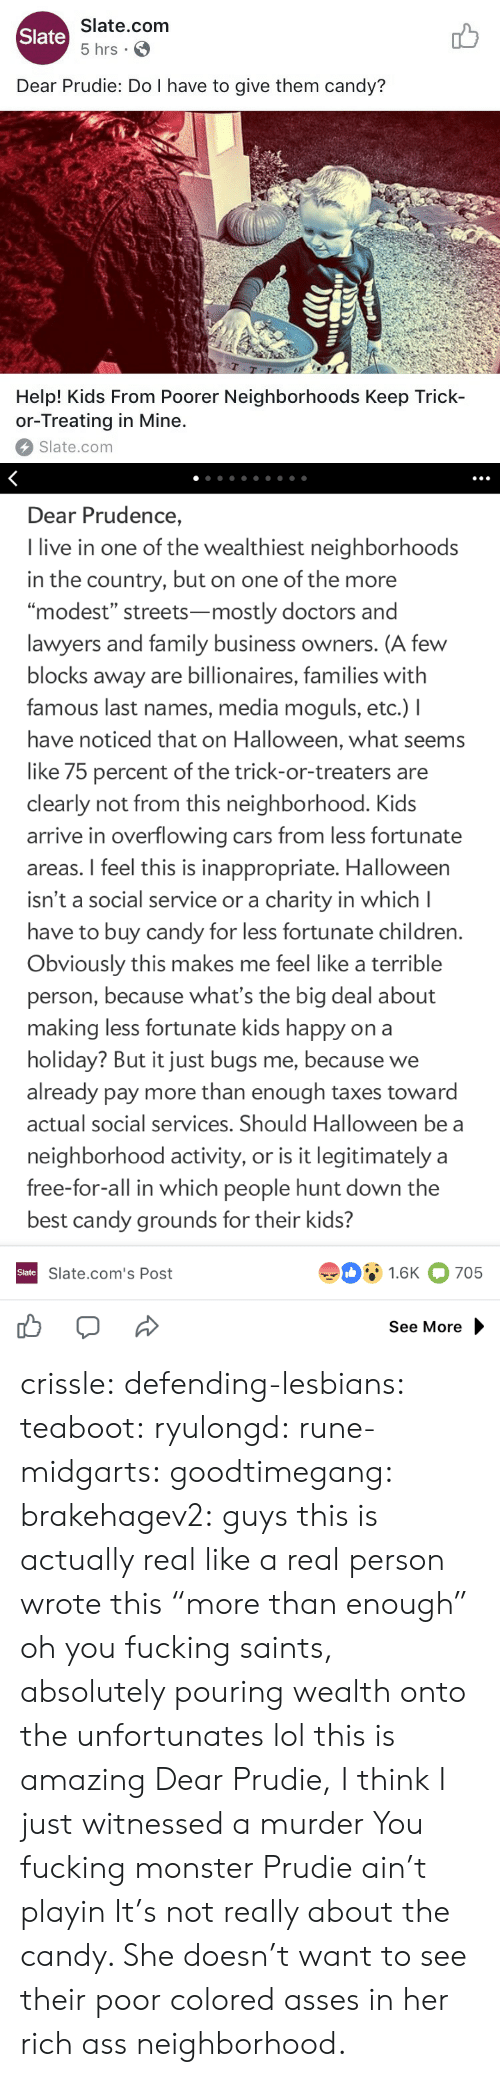 """last names: Slate.com  5 hrs .  Slate  Dear Prudie: Do I have to give them candy?  aT  T-T  Help! Kids From Poorer Neighborhoods Keep Trick-  or-Treating in Mine.  Slate.com   Dear Prudence,  I live in one of the wealthiest neighborhoods  in the country, but on one of the more  """"modest"""" streets-mostly doctors and  lawyers and family business owners. (A few  blocks away are billionaires, families with  famous last names, media moguls, etc.) I  have noticed that on Halloween, what seems  like 75 percent of the trick-or-treaters are  clearly not from this neighborhood. Kids  arrive in overflowing cars from less fortunate  areas. I feel this is inappropriate. Halloween  isn't a social service or a charity in which l  have to buy candy for less fortunate children  Obviously this makes me feel like a terrible  person, because what's the big deal about  making less fortunate kids happy on a  holiday? But it just bugs me, because we  already pay more than enough taxes toward  actual social services. Should Halloween be a  neighborhood activity, or is it legitimately a  free-for-all in which people hunt down the  best candy grounds for their kids?  91.6K 705  Slate  Slate.com's Post  See More crissle:  defending-lesbians:  teaboot:  ryulongd:  rune-midgarts:  goodtimegang:  brakehagev2:  guys this is actually real like a real person wrote this  """"more than enough"""" oh you fucking saints, absolutely pouring wealth onto the unfortunates   lol this is amazing   Dear Prudie, I think I just witnessed a murder  You fucking monster  Prudie ain't playin  It's not really about the candy. She doesn't want to see their poor colored asses in her rich ass neighborhood."""